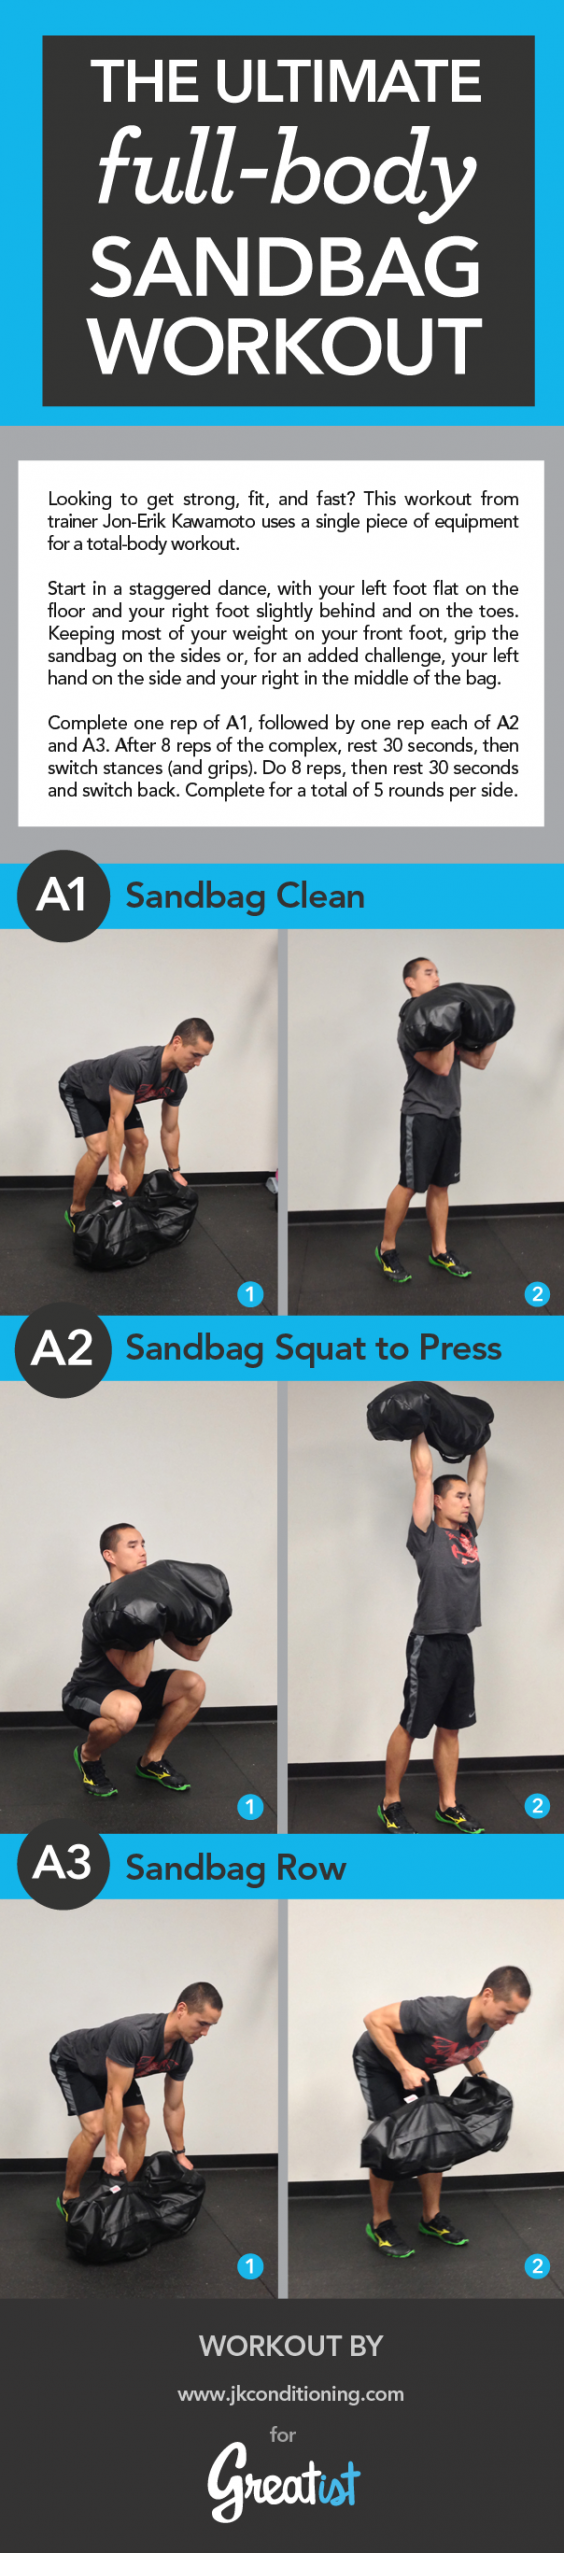 The Ultimate Full Body Sandbag Workout INFOGRAPHIC Greatist